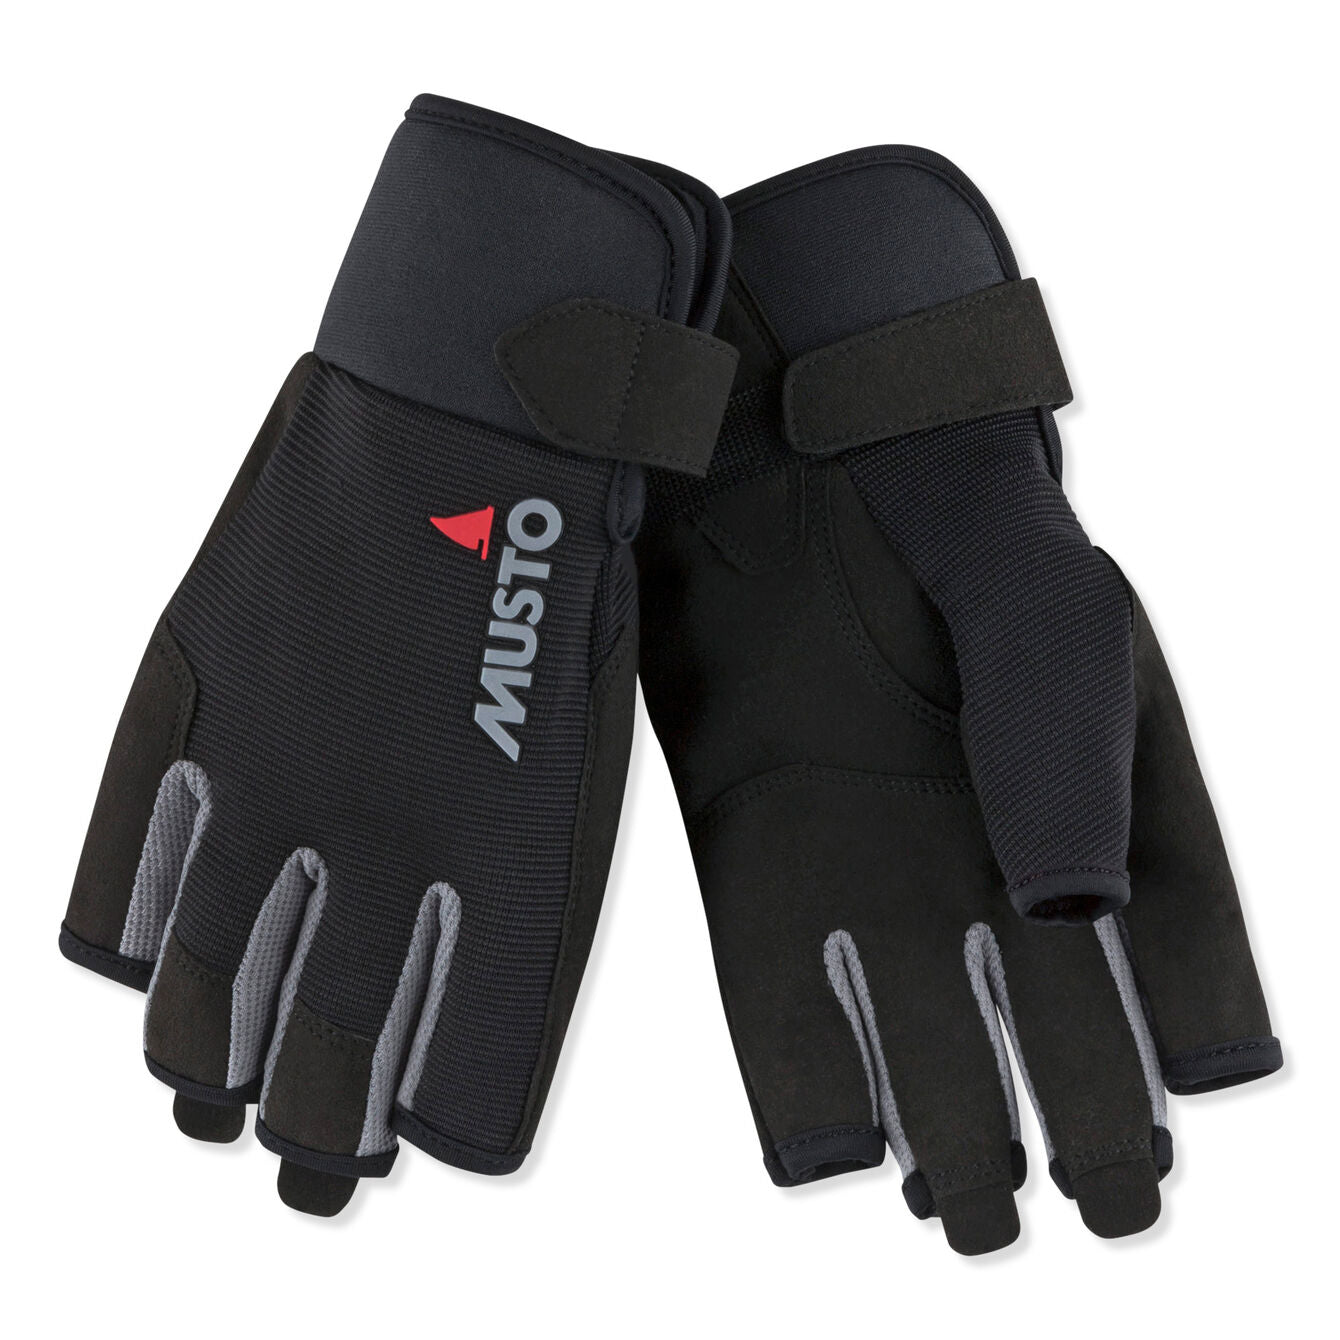 ESSENTIAL SAILING SHORT FINGER GLOVE